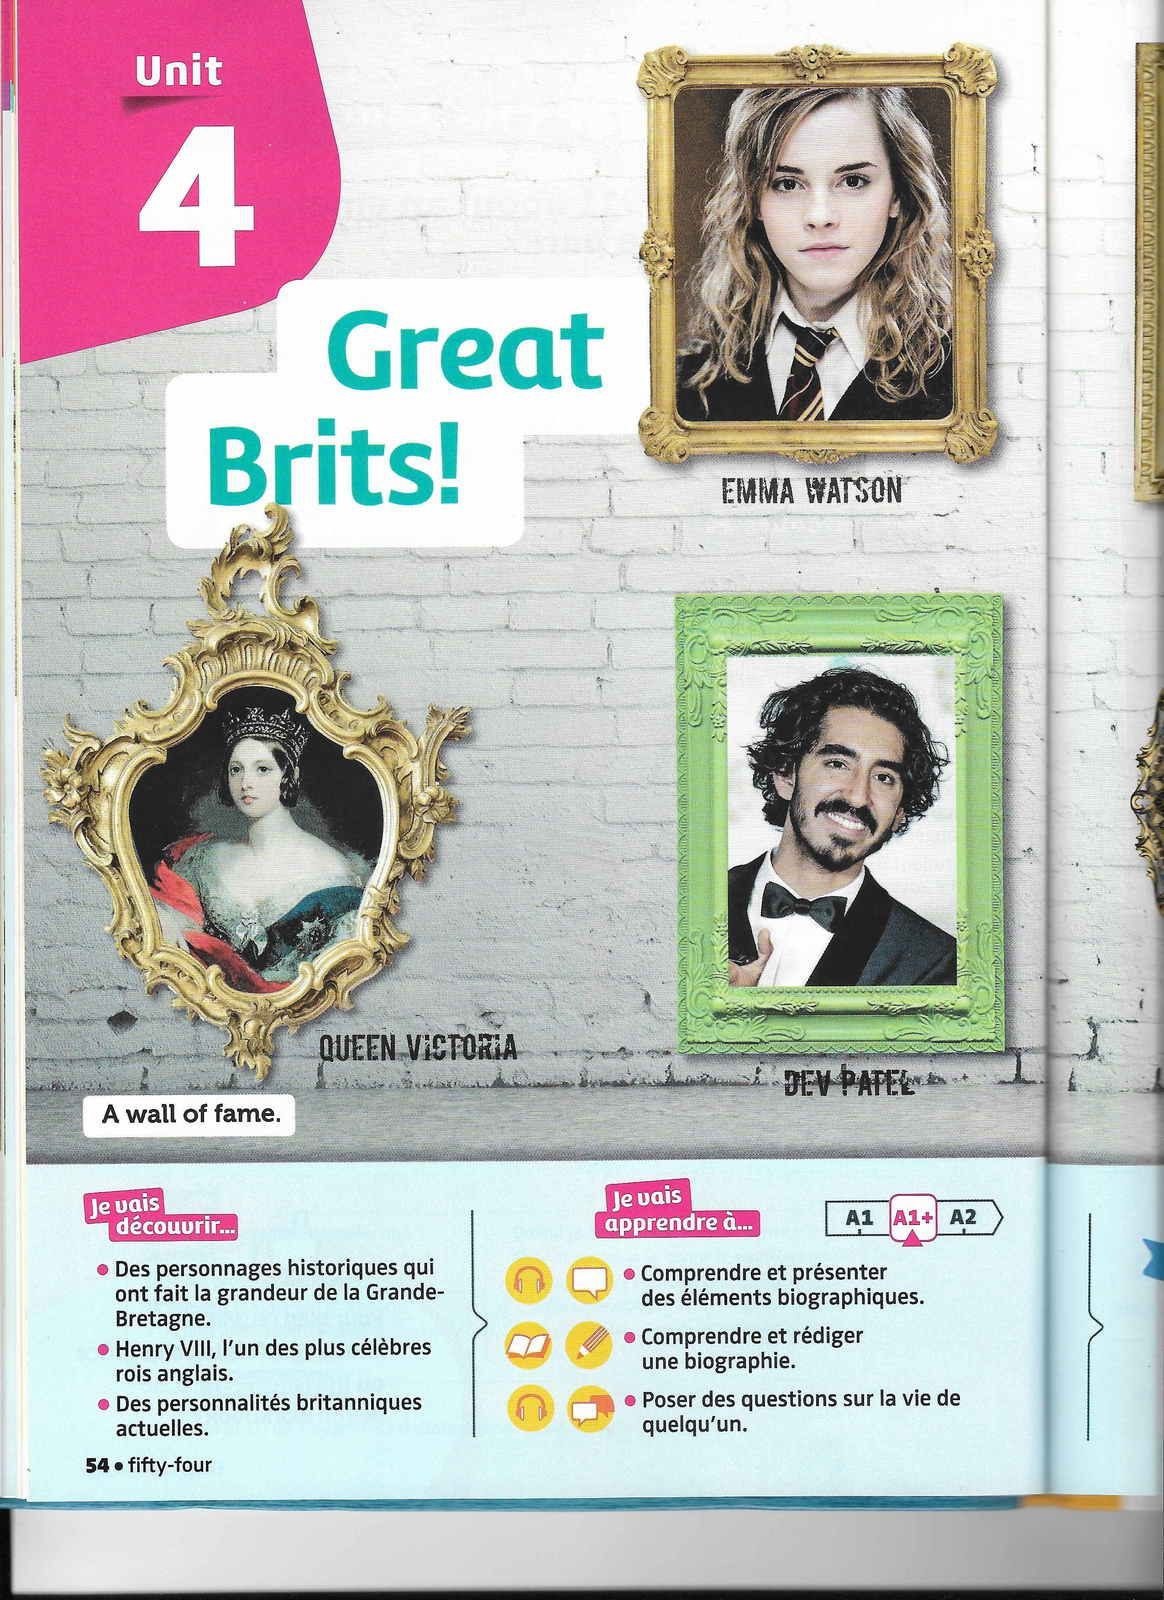 Famous Brits on money!